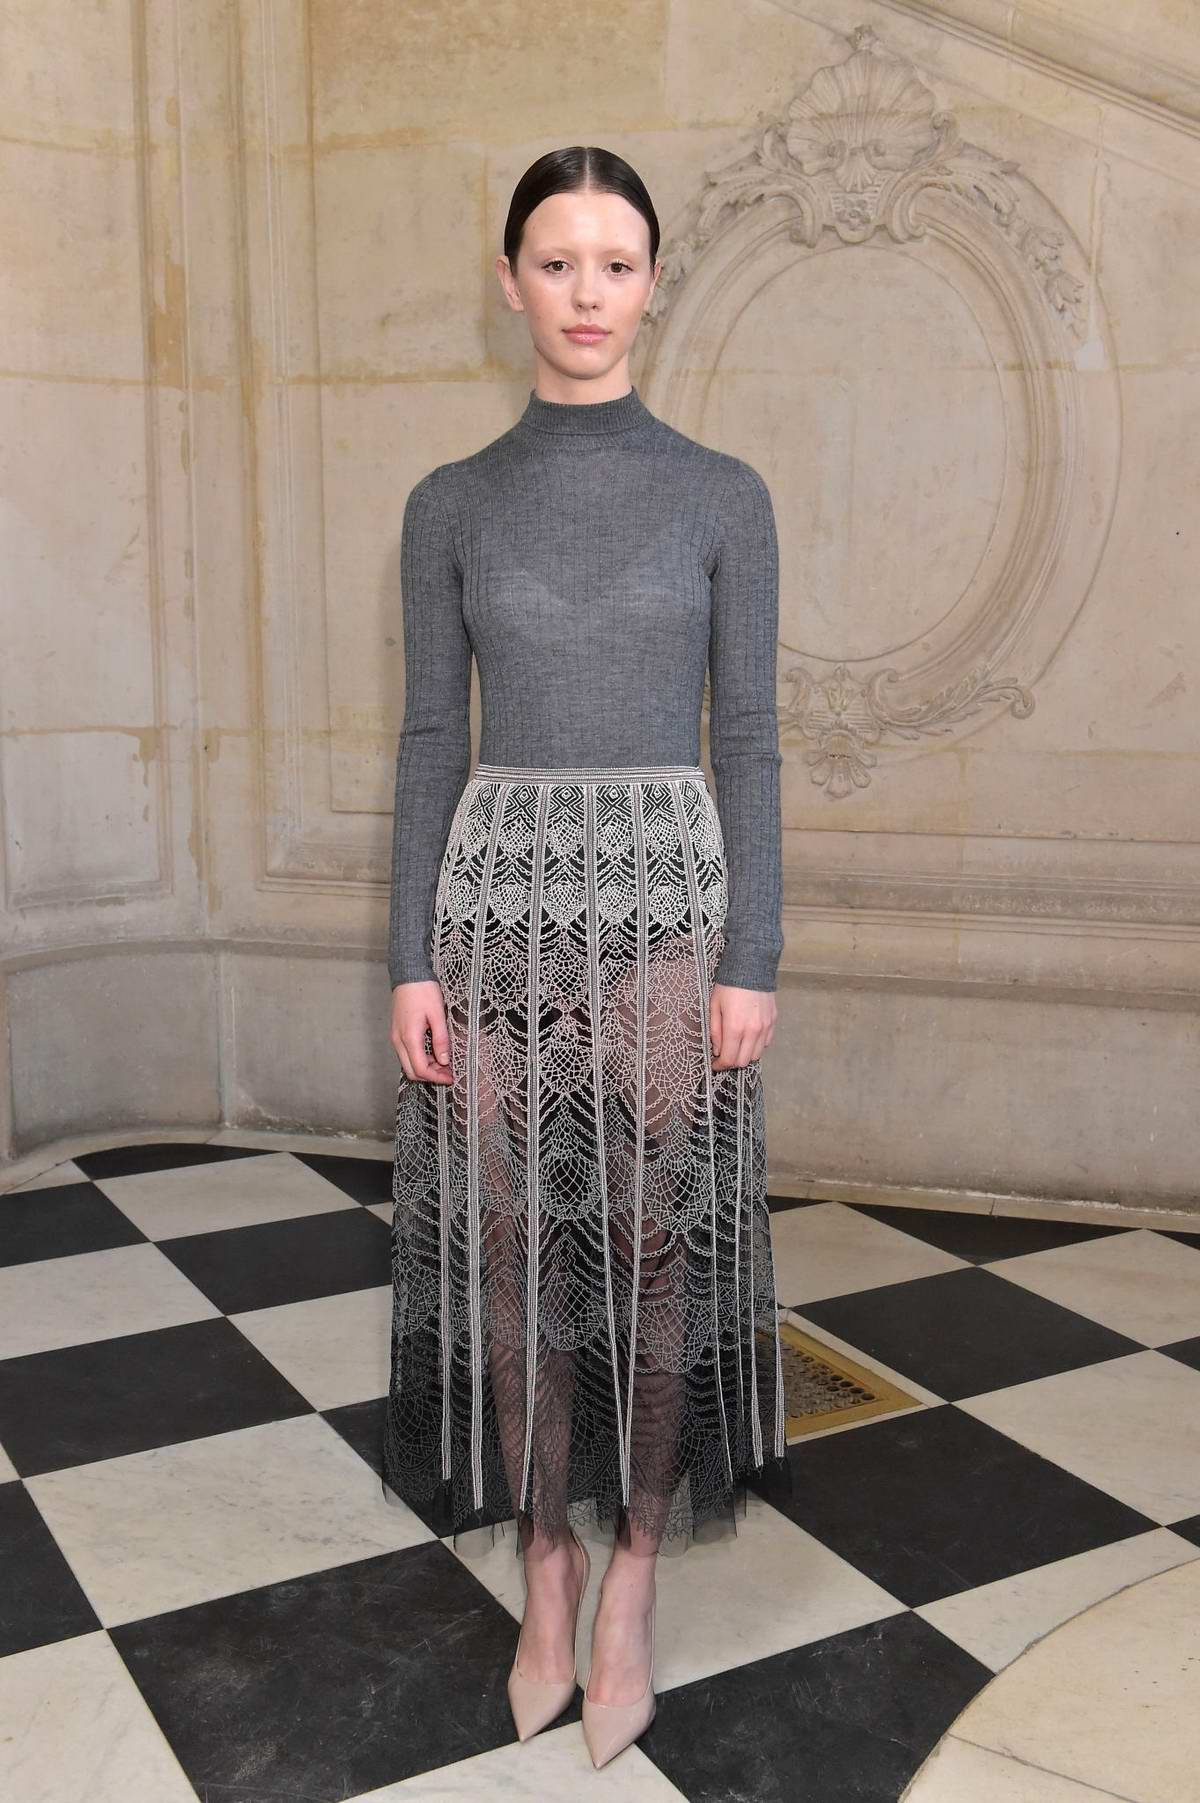 5ad7a92a Mia Goth attends the Christian Dior Haute Couture Spring/Summer 2019 Show  during Paris Fashion Week in Paris, France